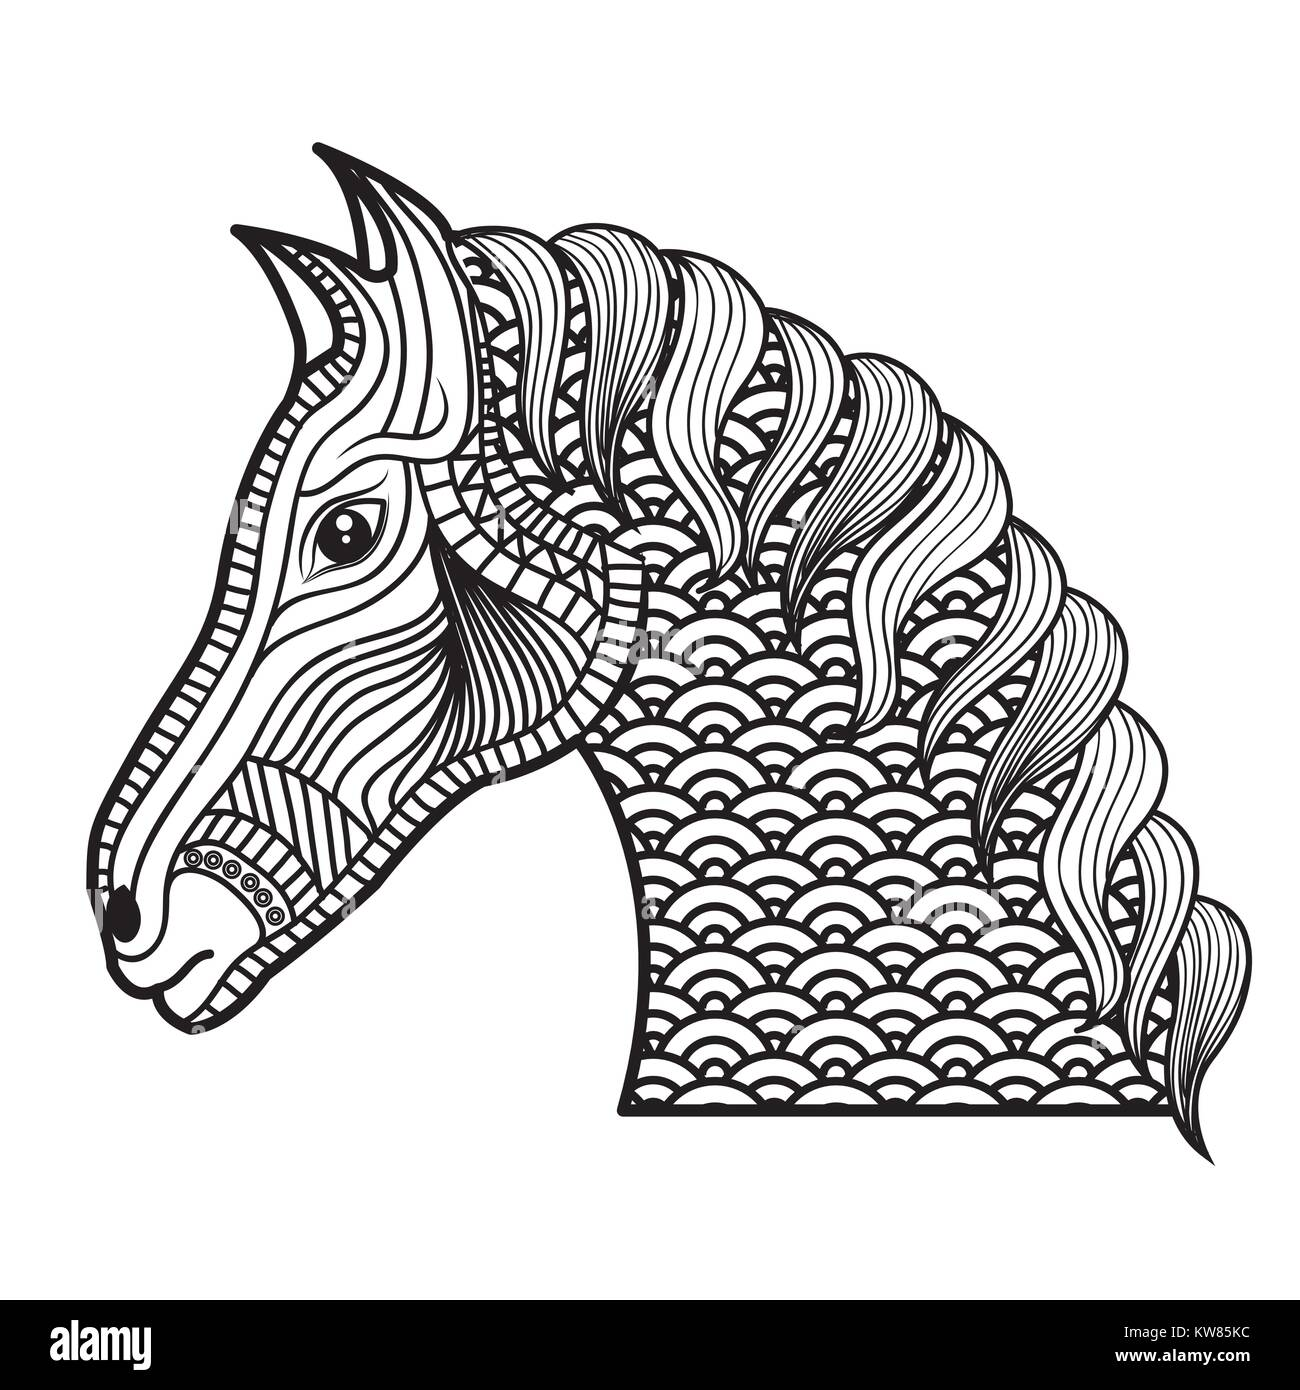 Coloriage Adulte Cheval.Coloriage Adultes Cheval Monochrome Dimensions Vector Illustration